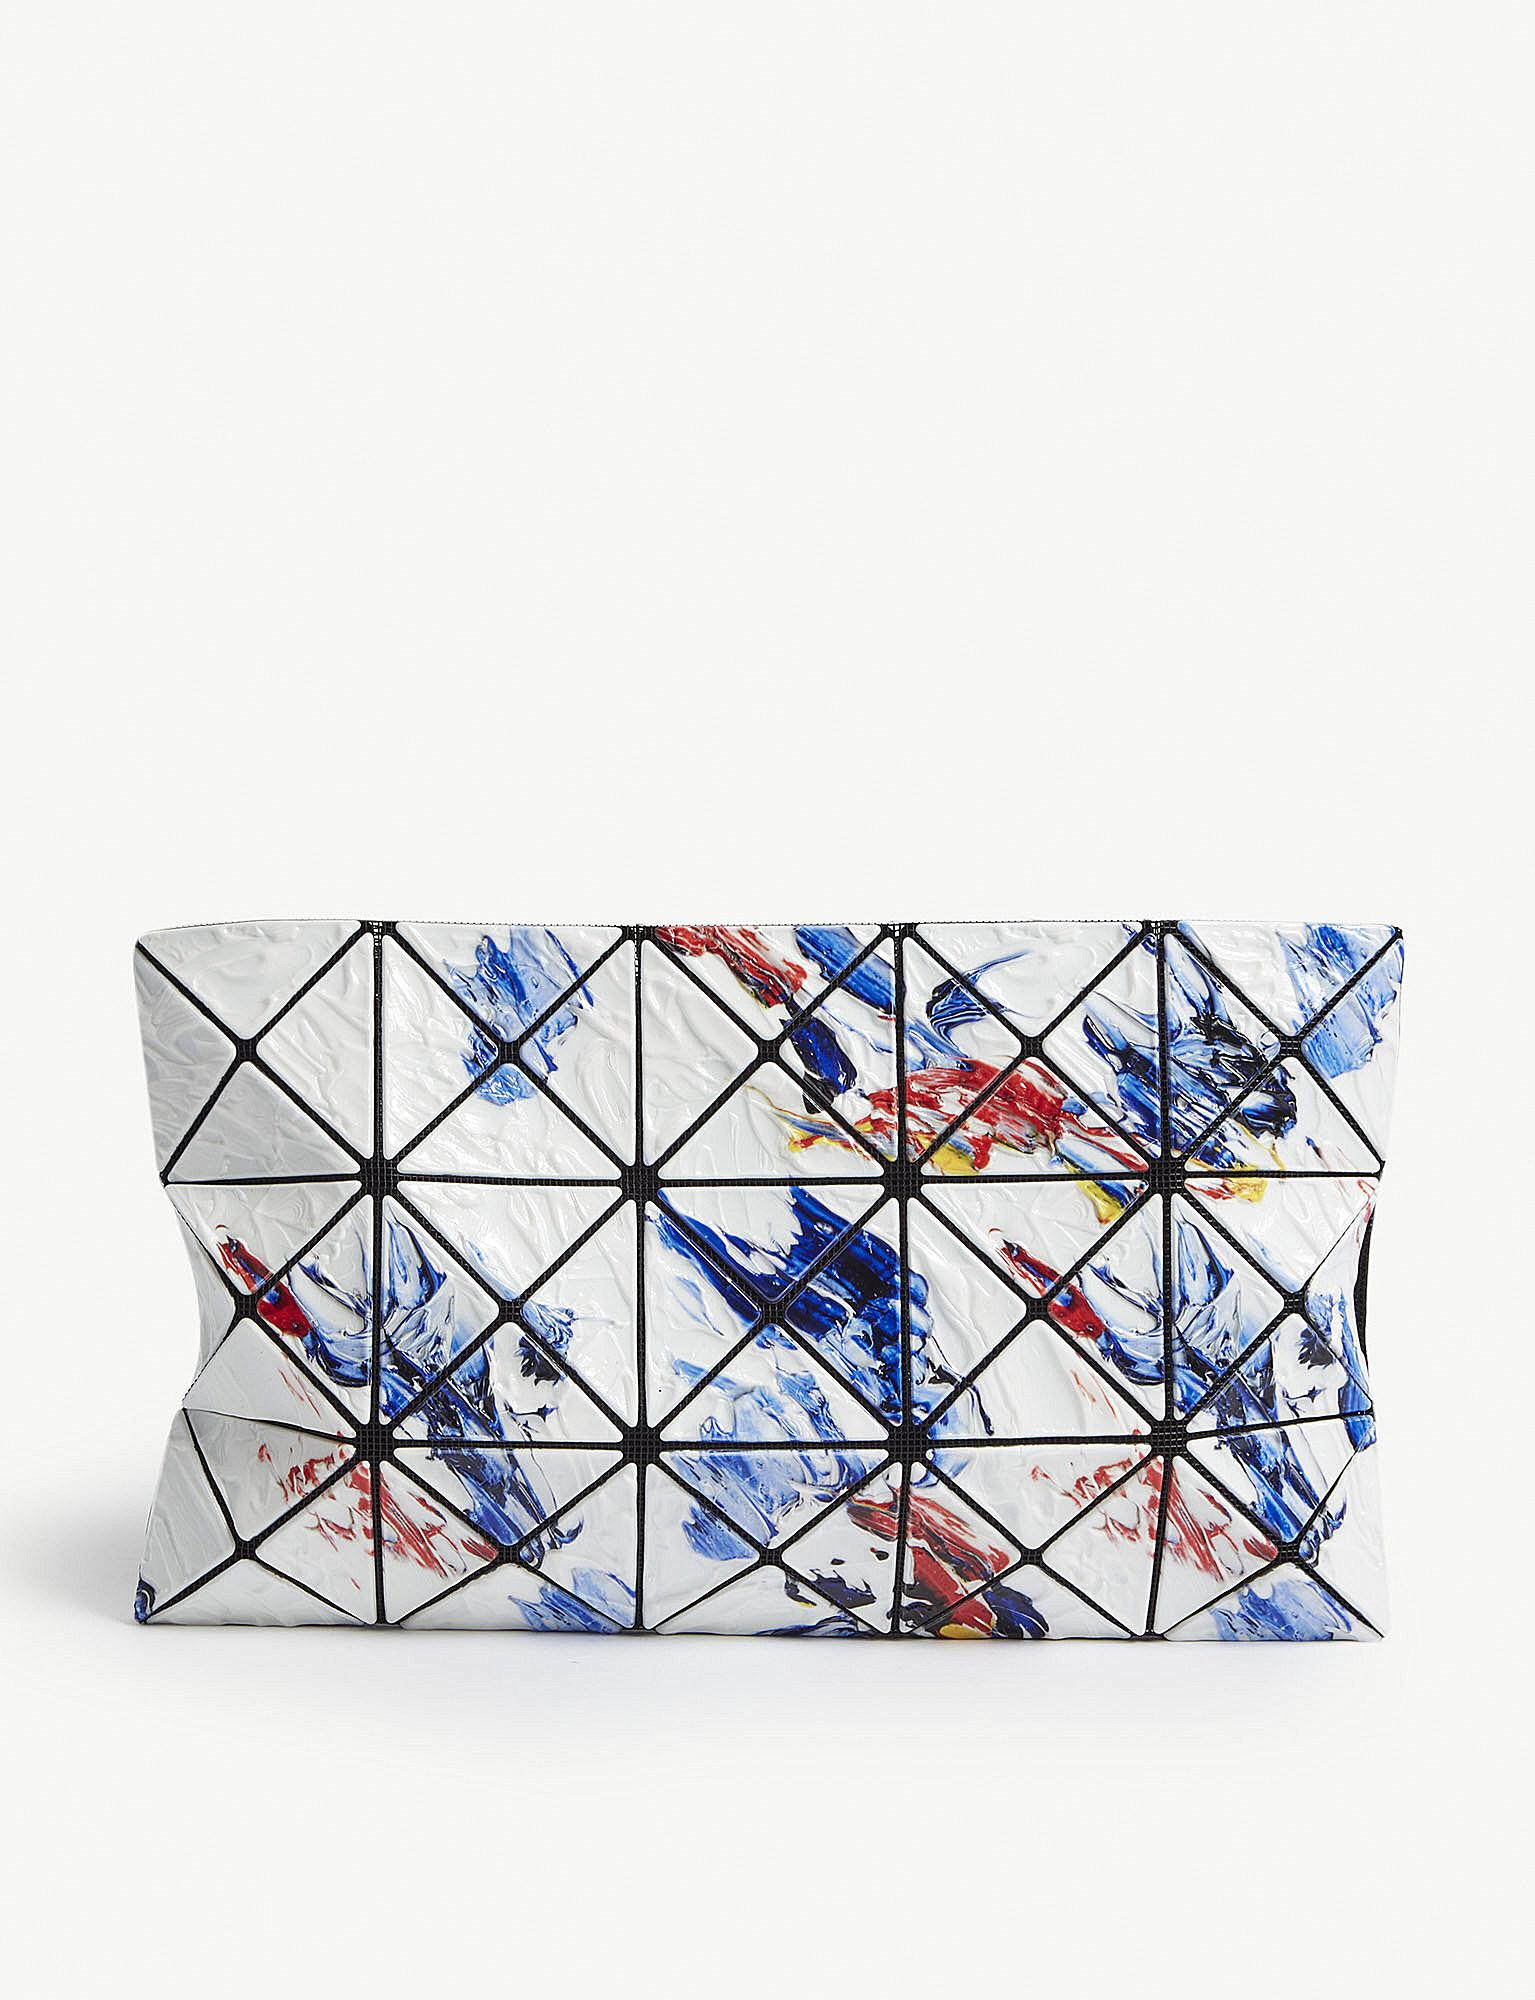 2b1db9dc09 Lyst - Bao Bao Issey Miyake Painting Prism Pvc Pouch in Blue